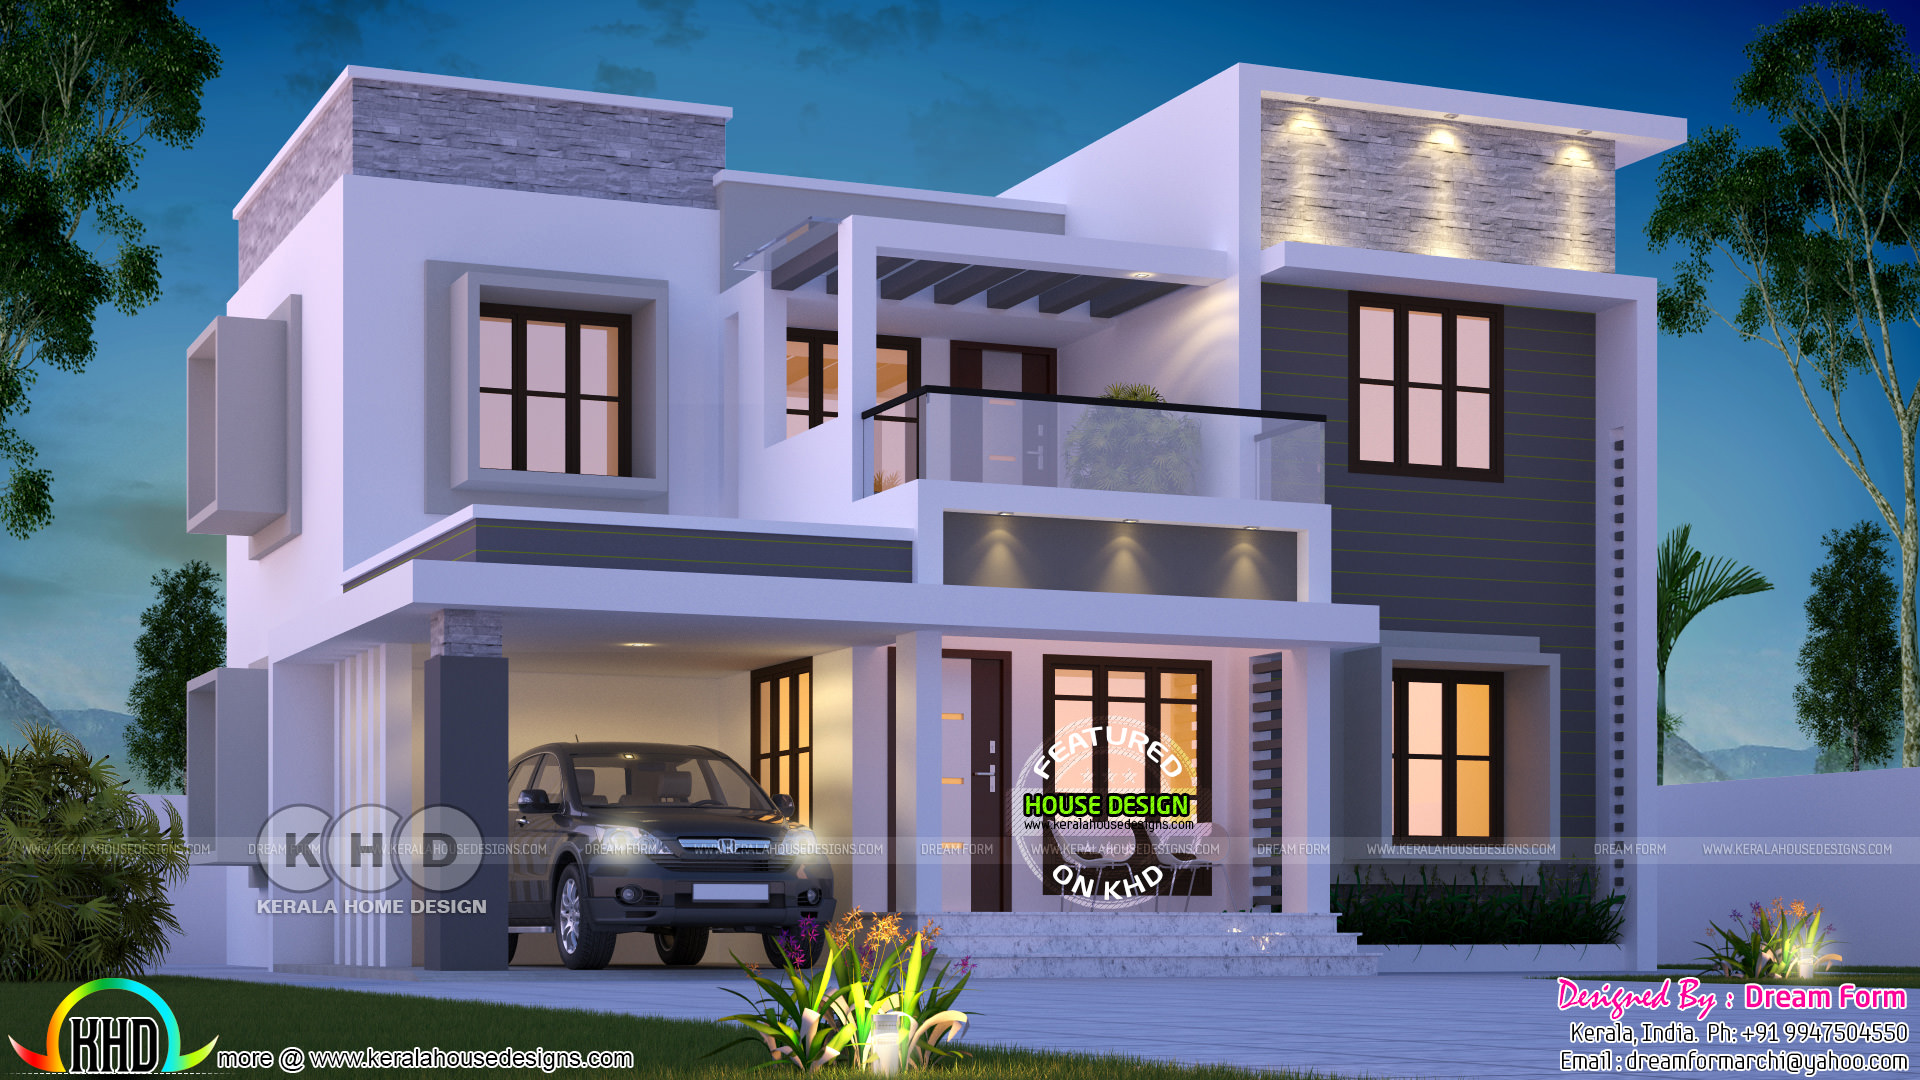 1905 Square Feet Box Model Contemporary Kerala Home Kerala